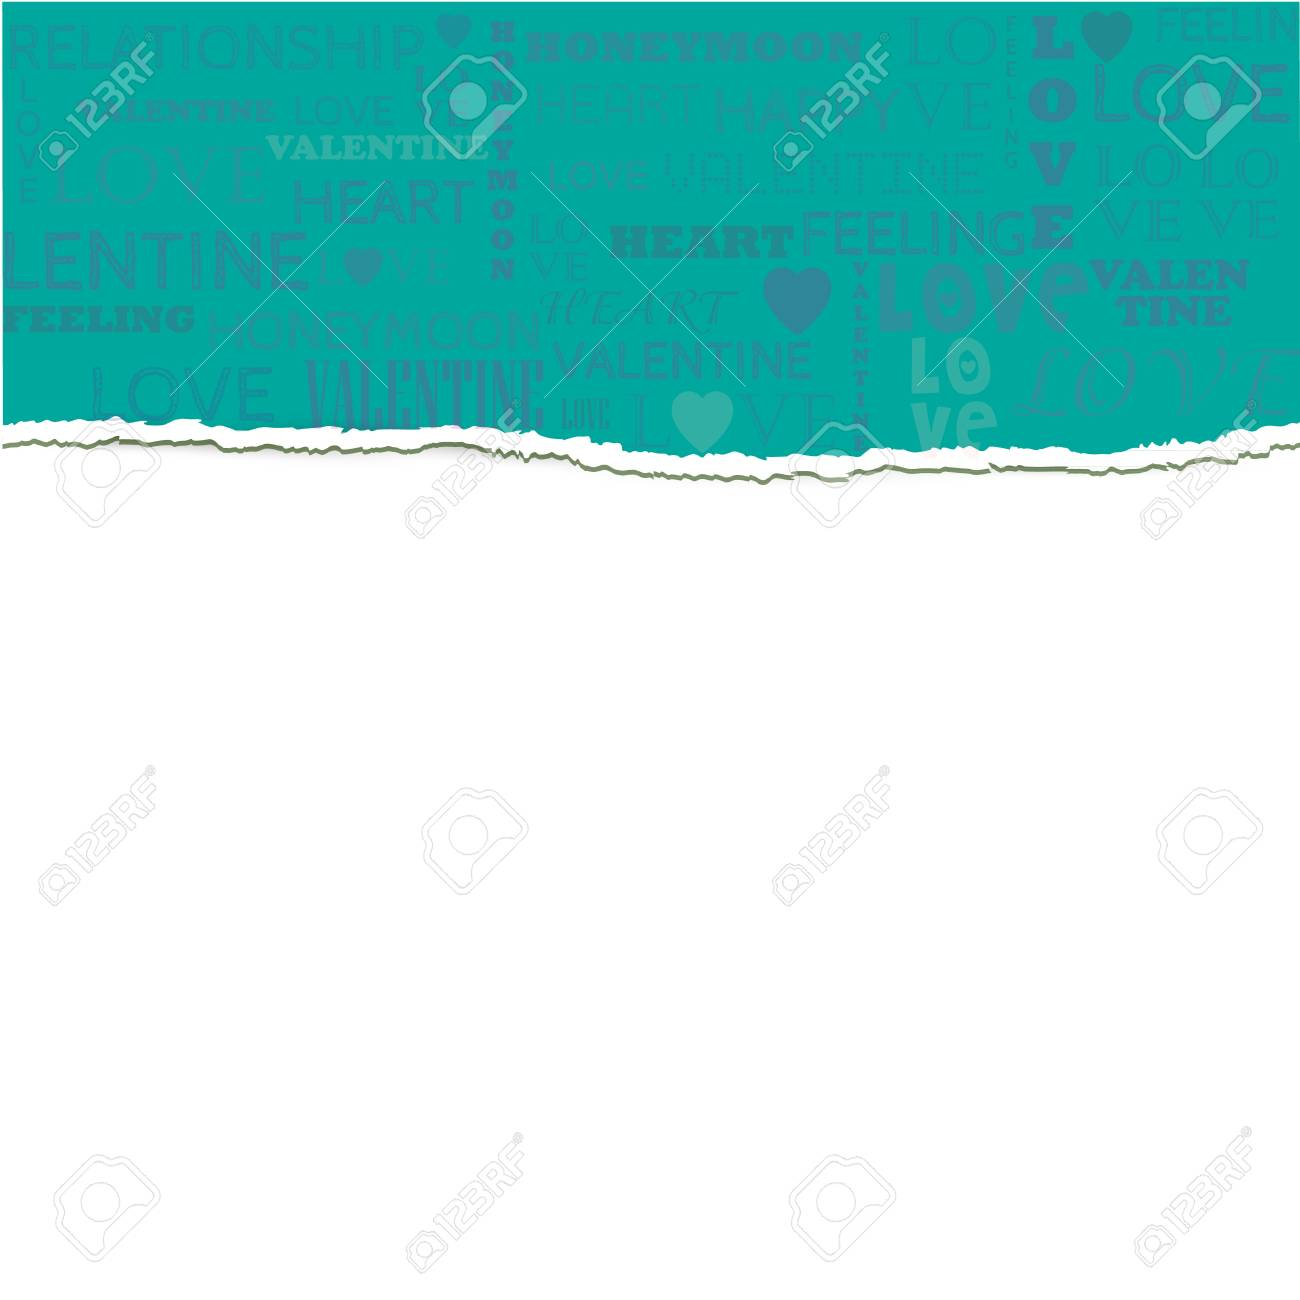 Love Paper Greeting Background Stock Vector - 17697912